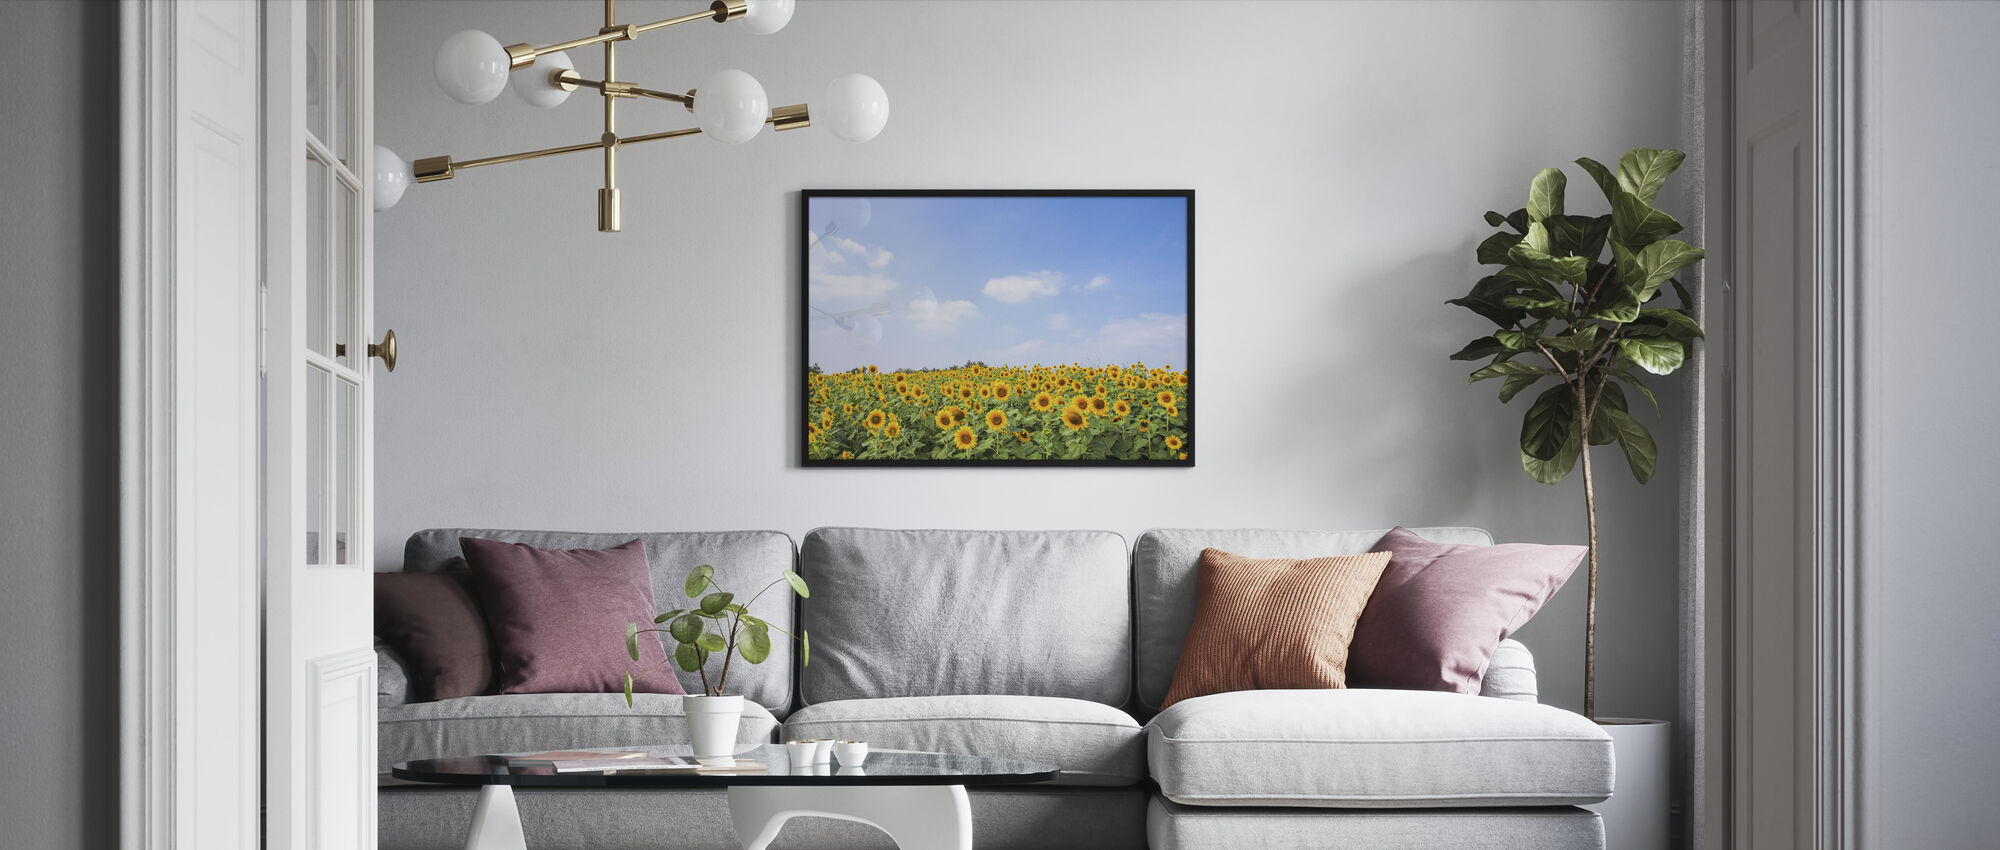 Soft Sunflowers - Framed print - Living Room